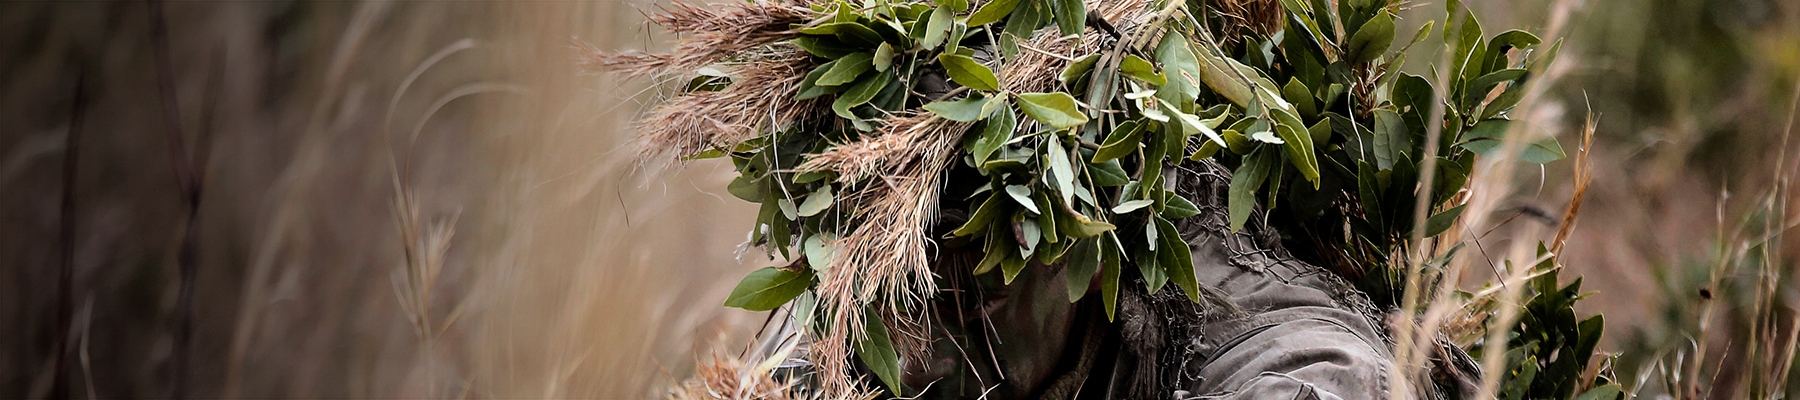 A Marine in camouflage looks out from behind leaves.